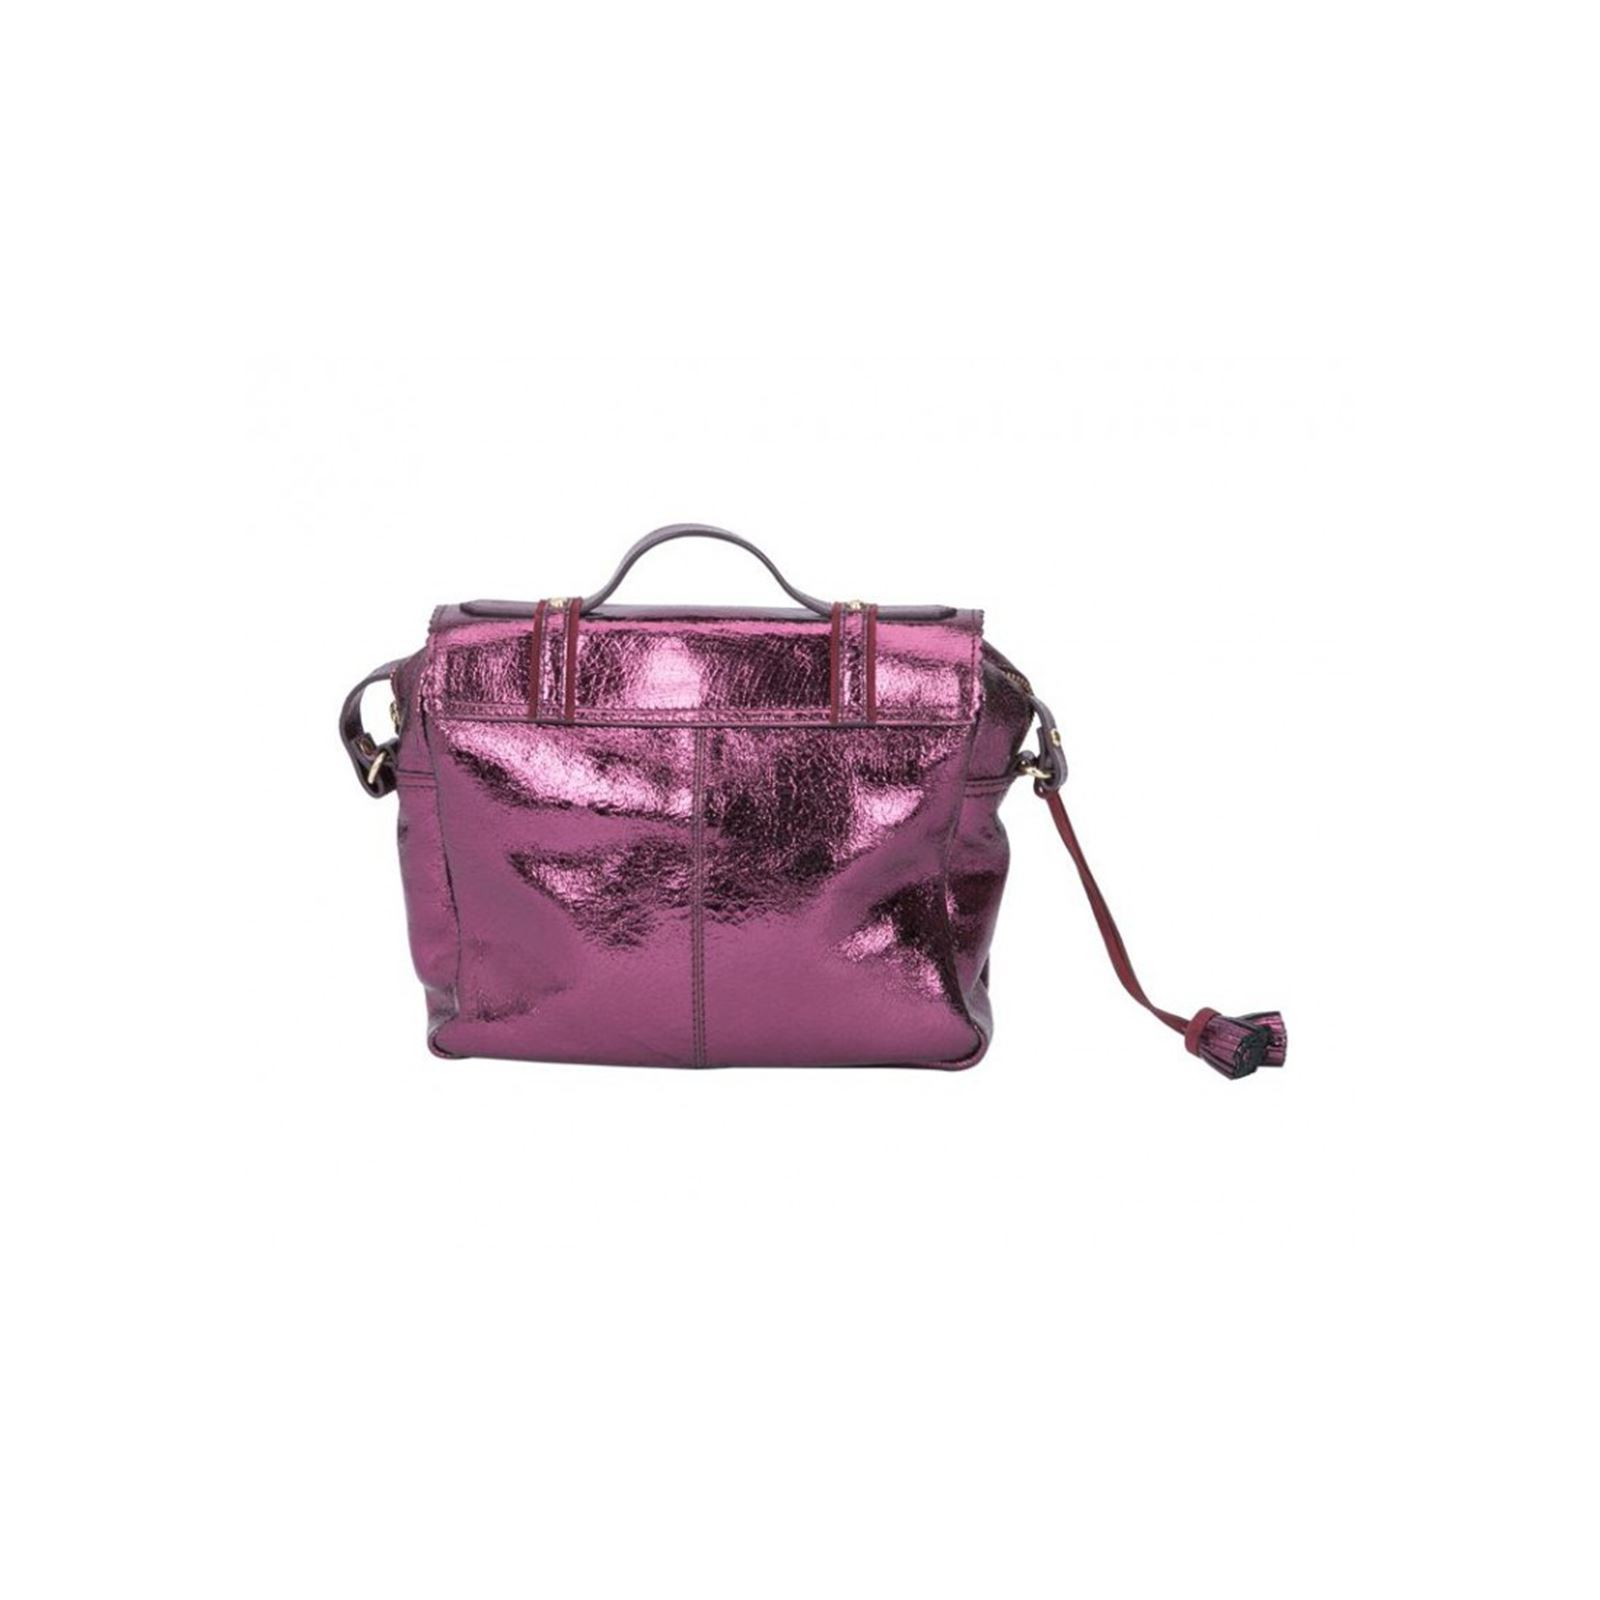 9995ba2cc3 Lollipops Claudine - Sac cartable en cuir - violet | BrandAlley